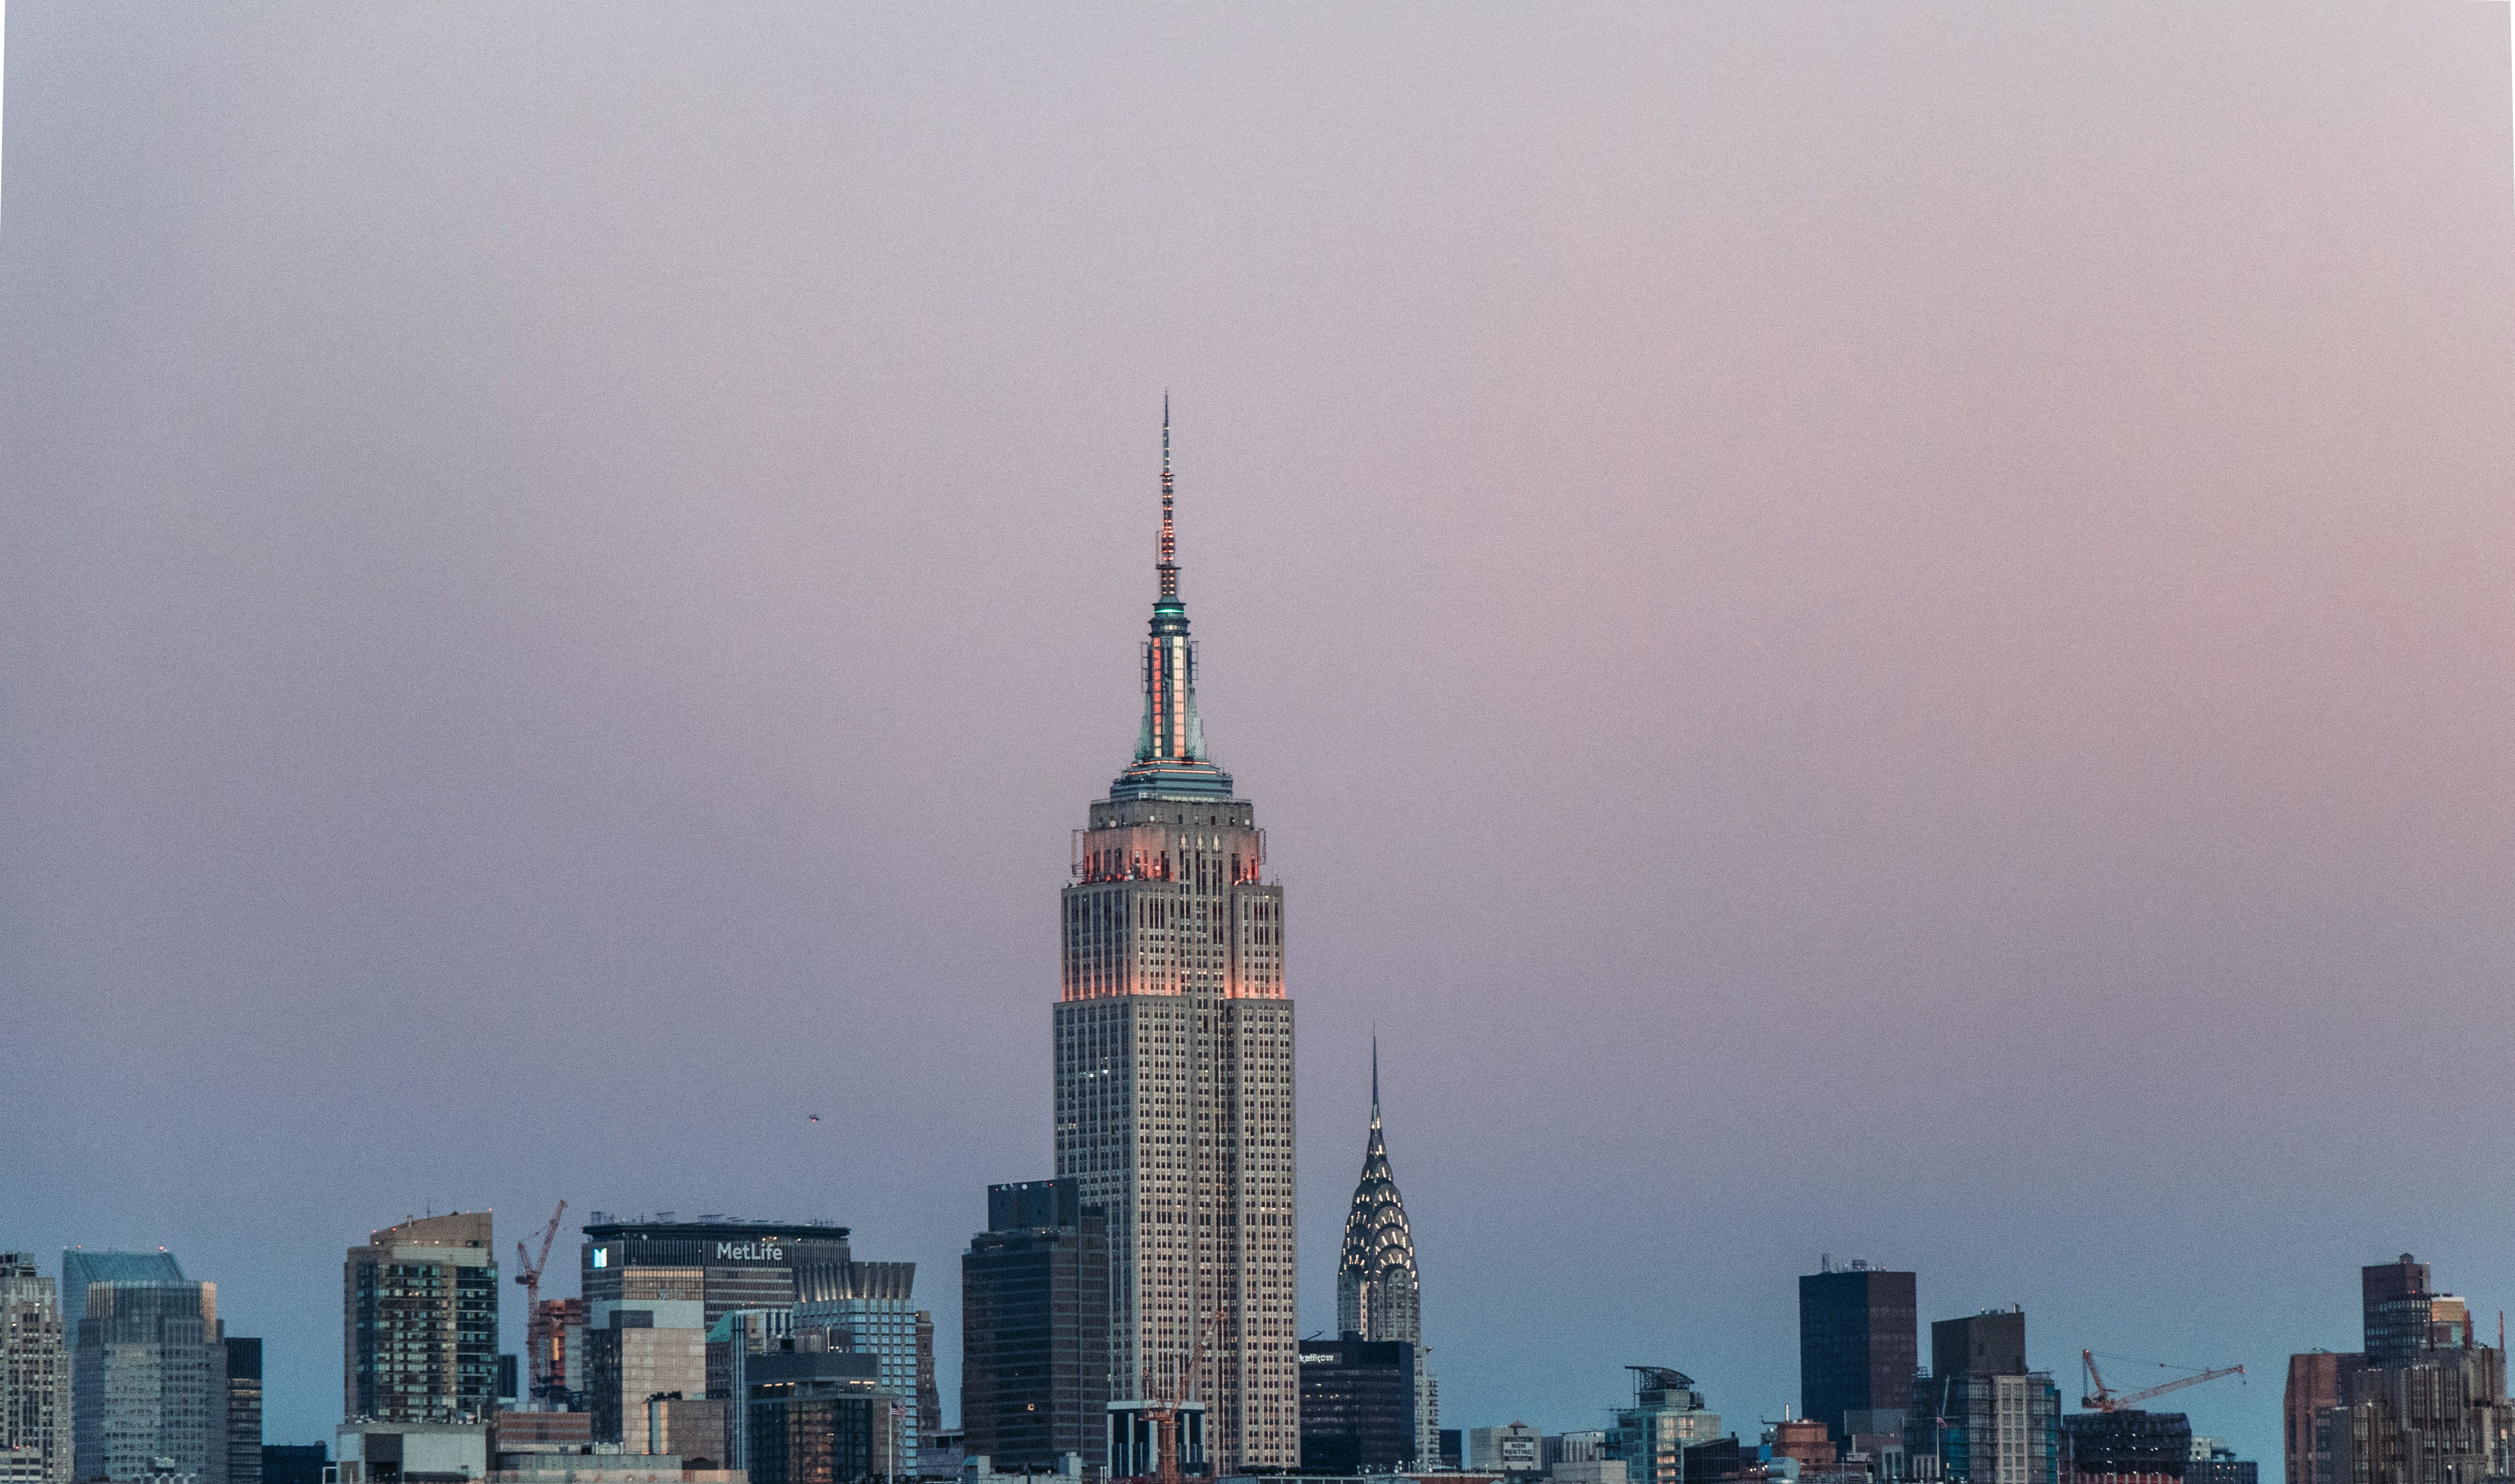 Empire State building in New York City